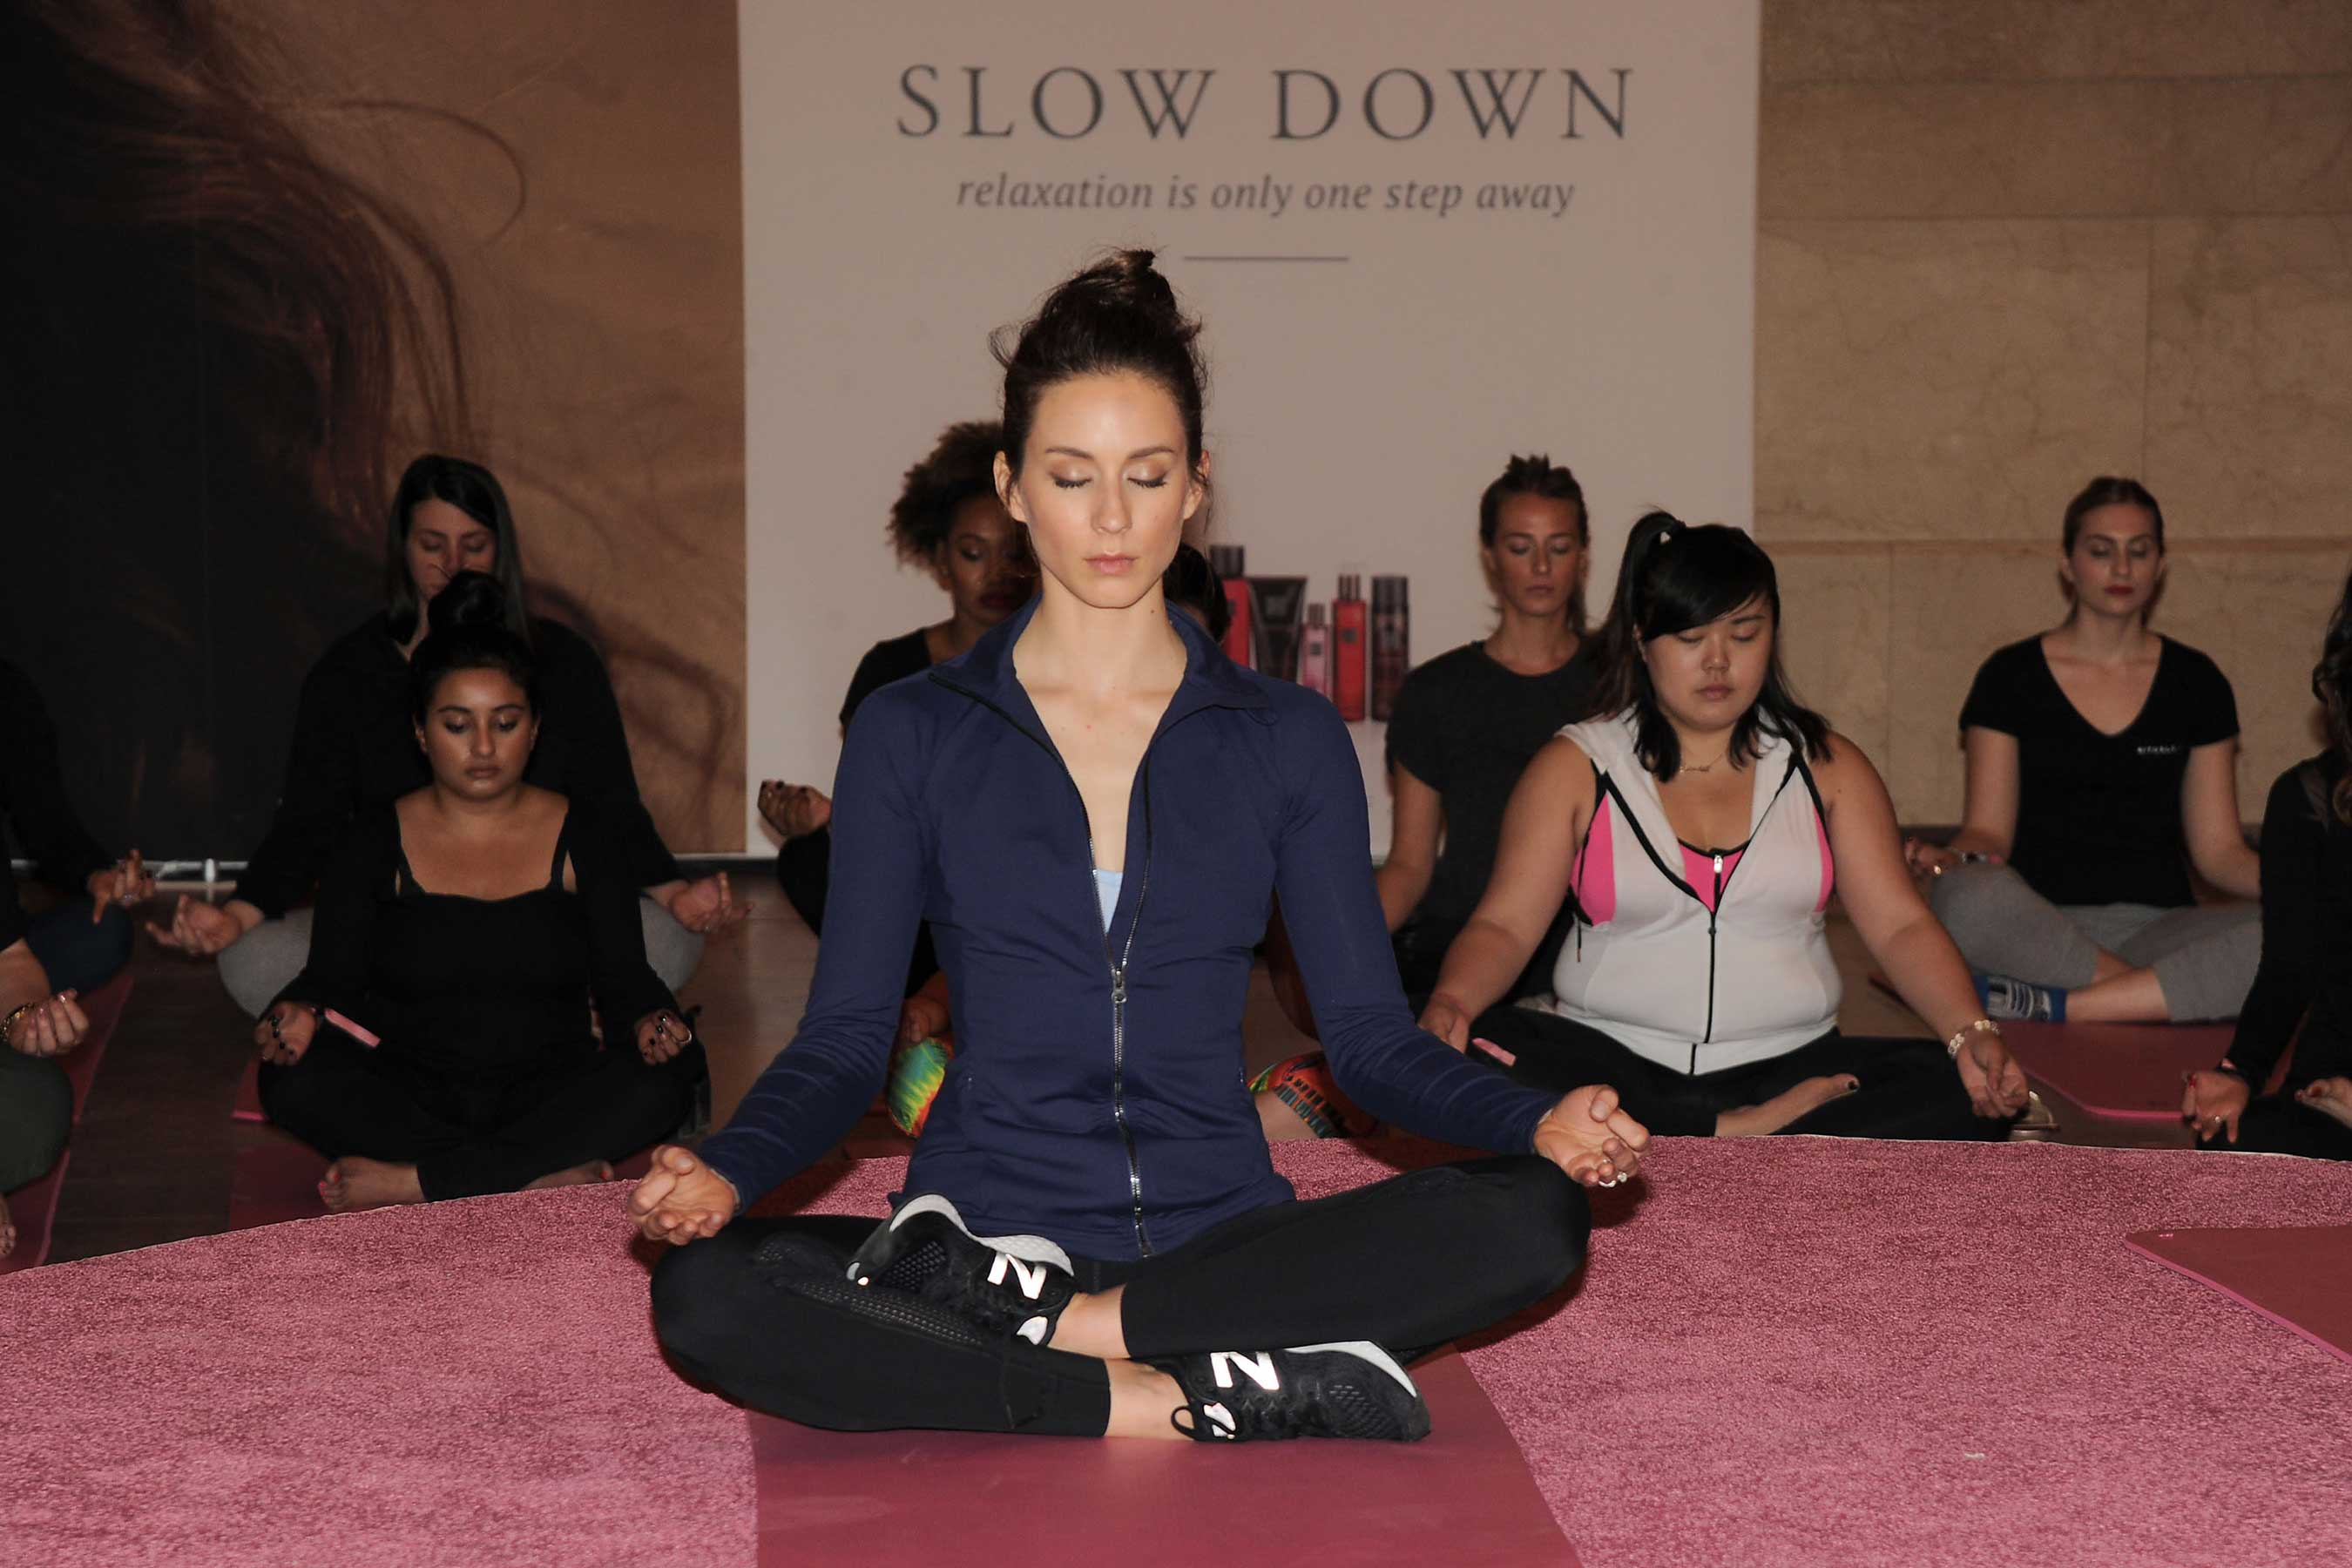 Troian Bellisario meditating with Rituals Cosmetics in Grand Central Terminal in NYC for #slowdown campaign